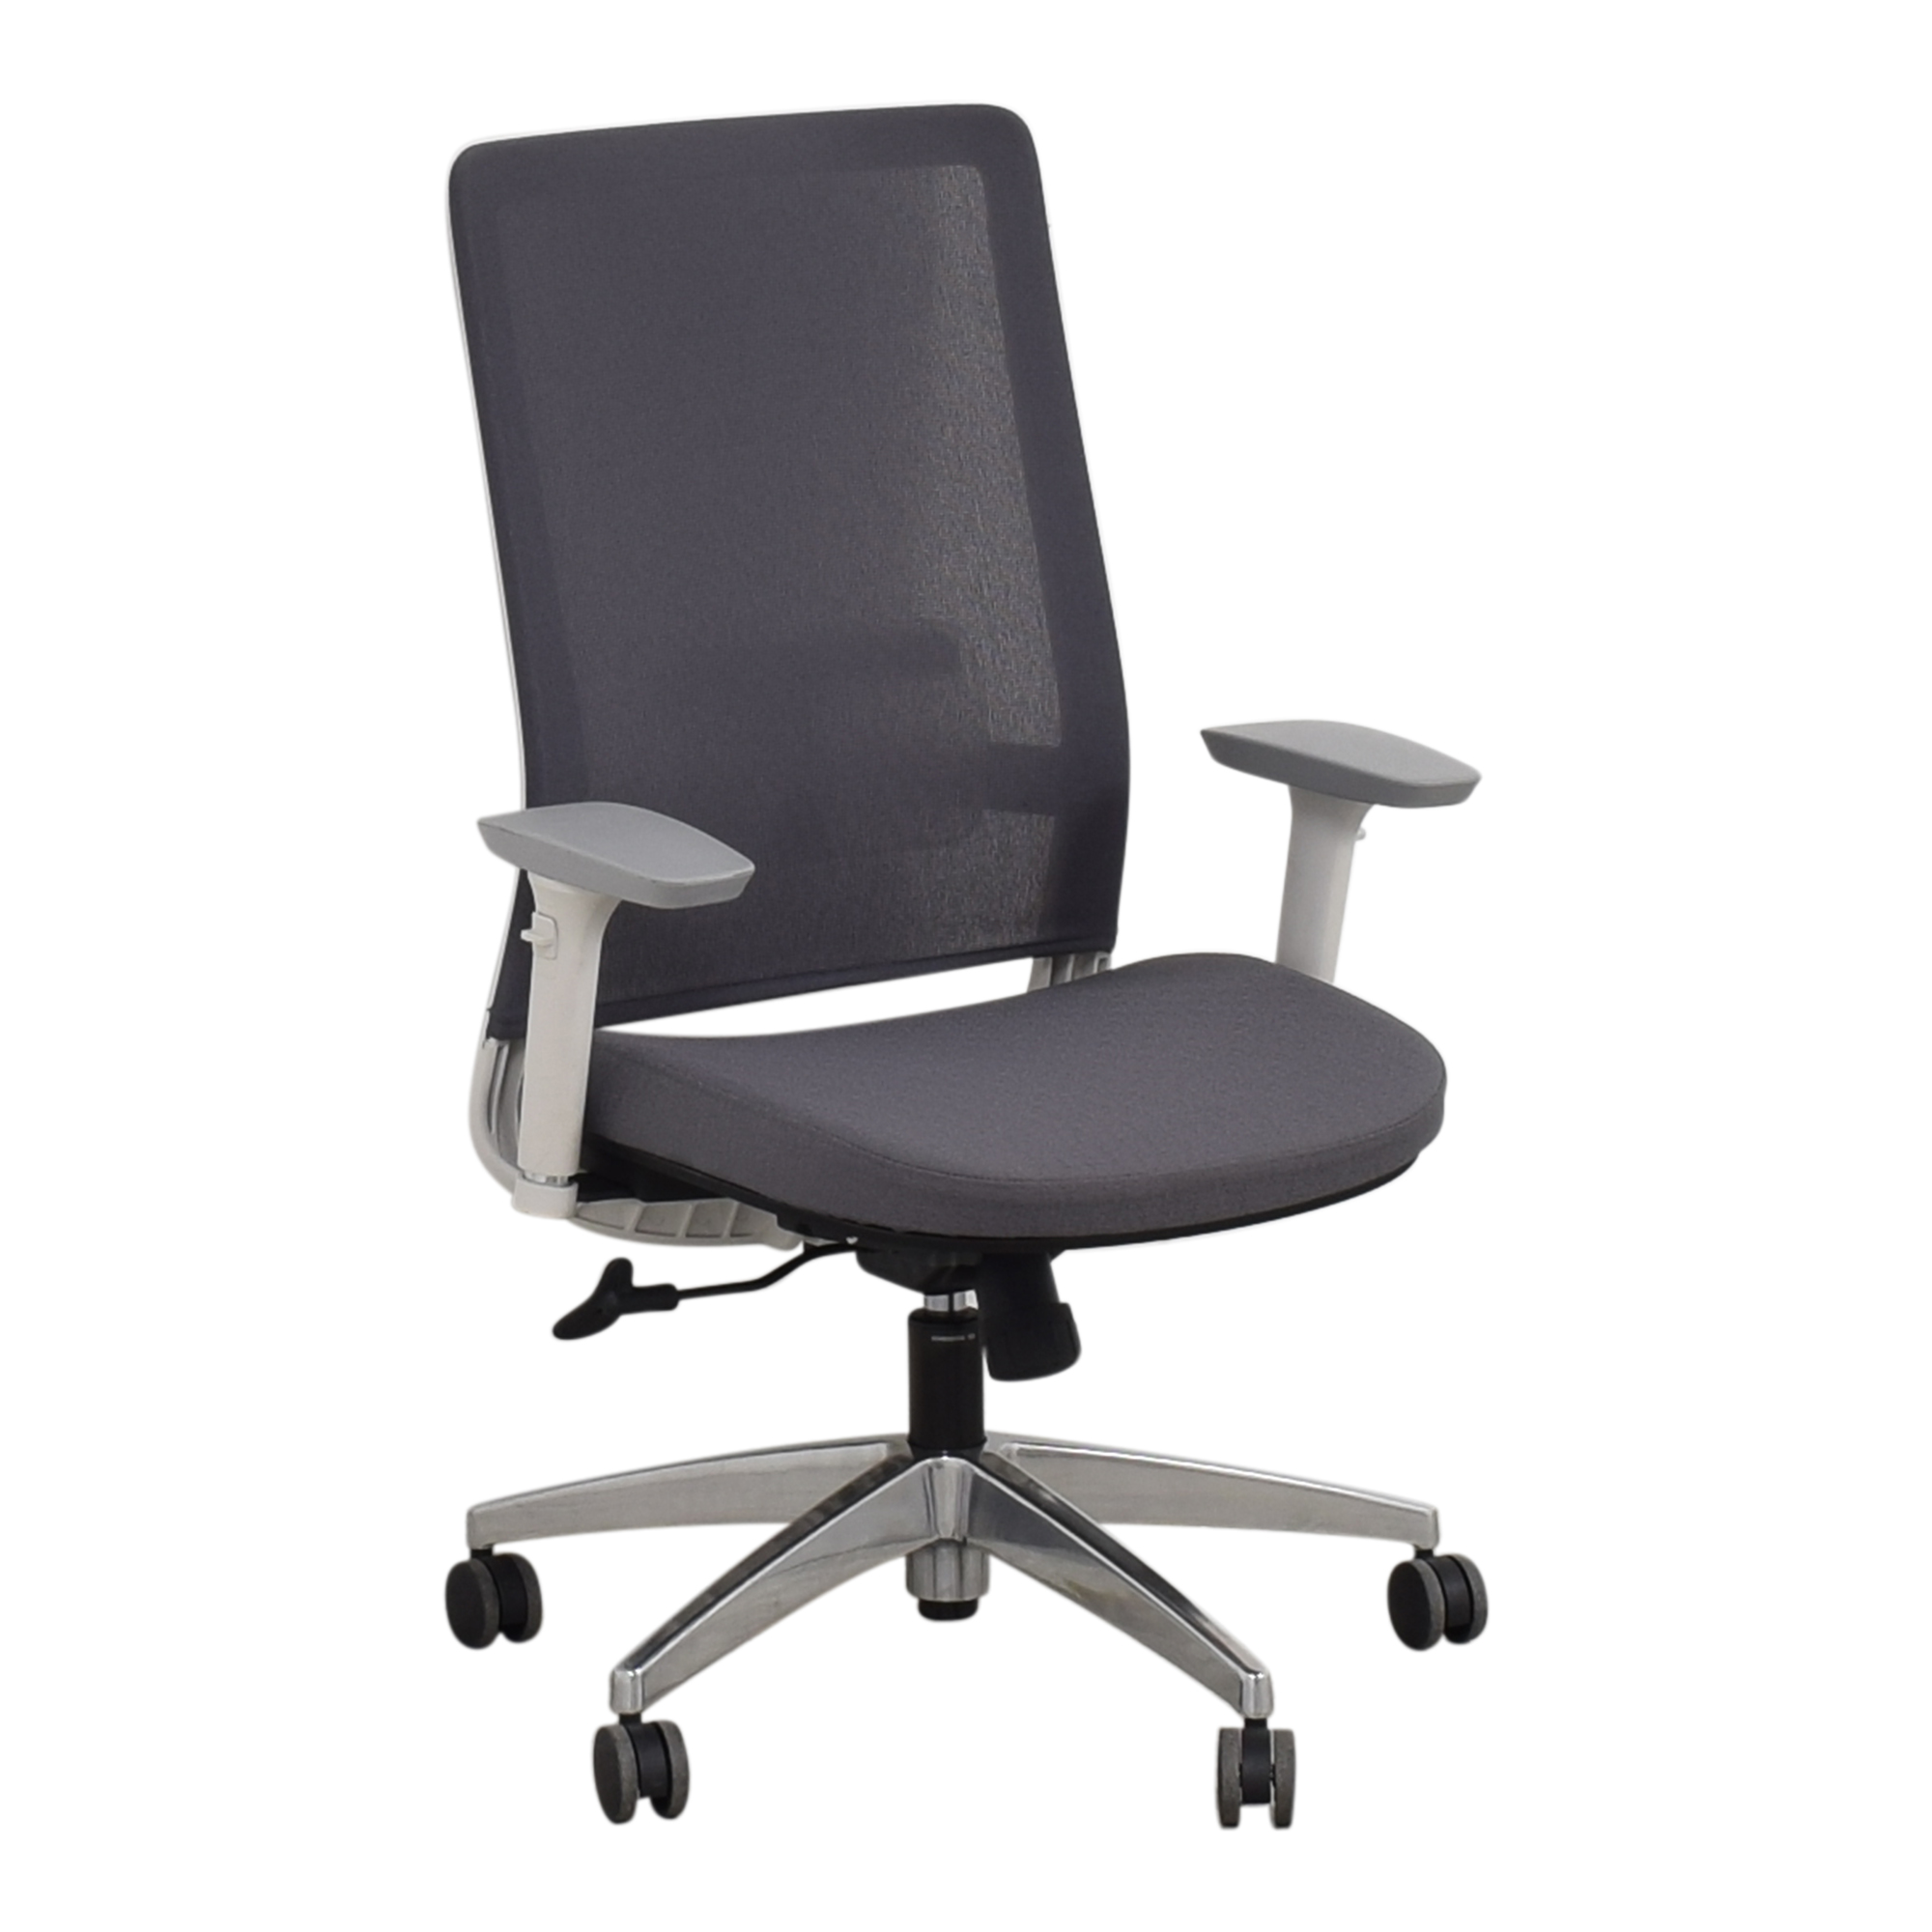 Global Furniture Group Global Furniture Group Factor High Back Office Chair coupon